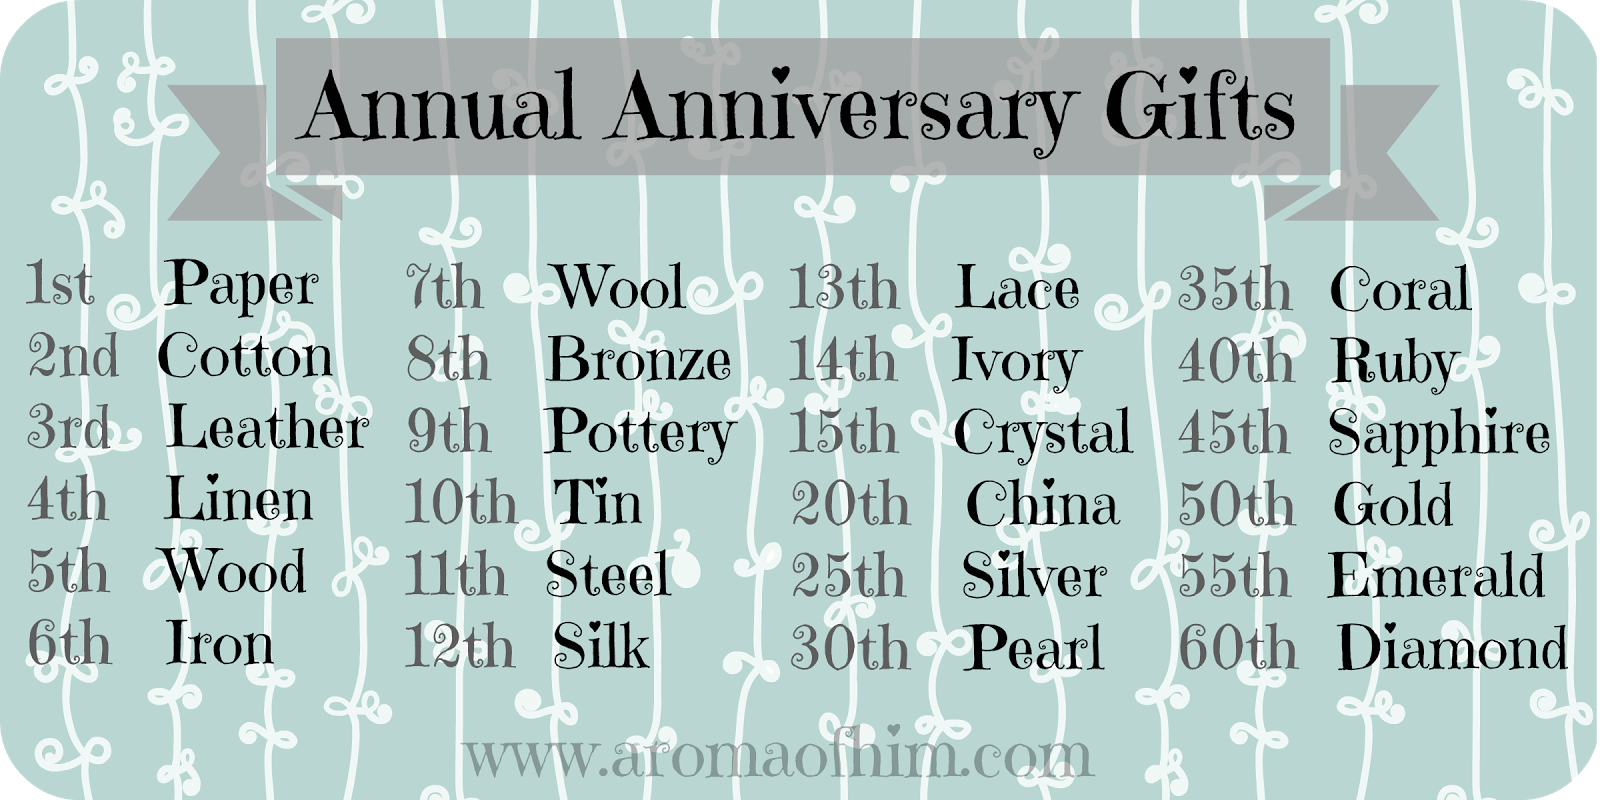 1 Year Wedding Gifts : Curious To Know If Anyone Uses This List Each Year I Guess I . 2 Month ...